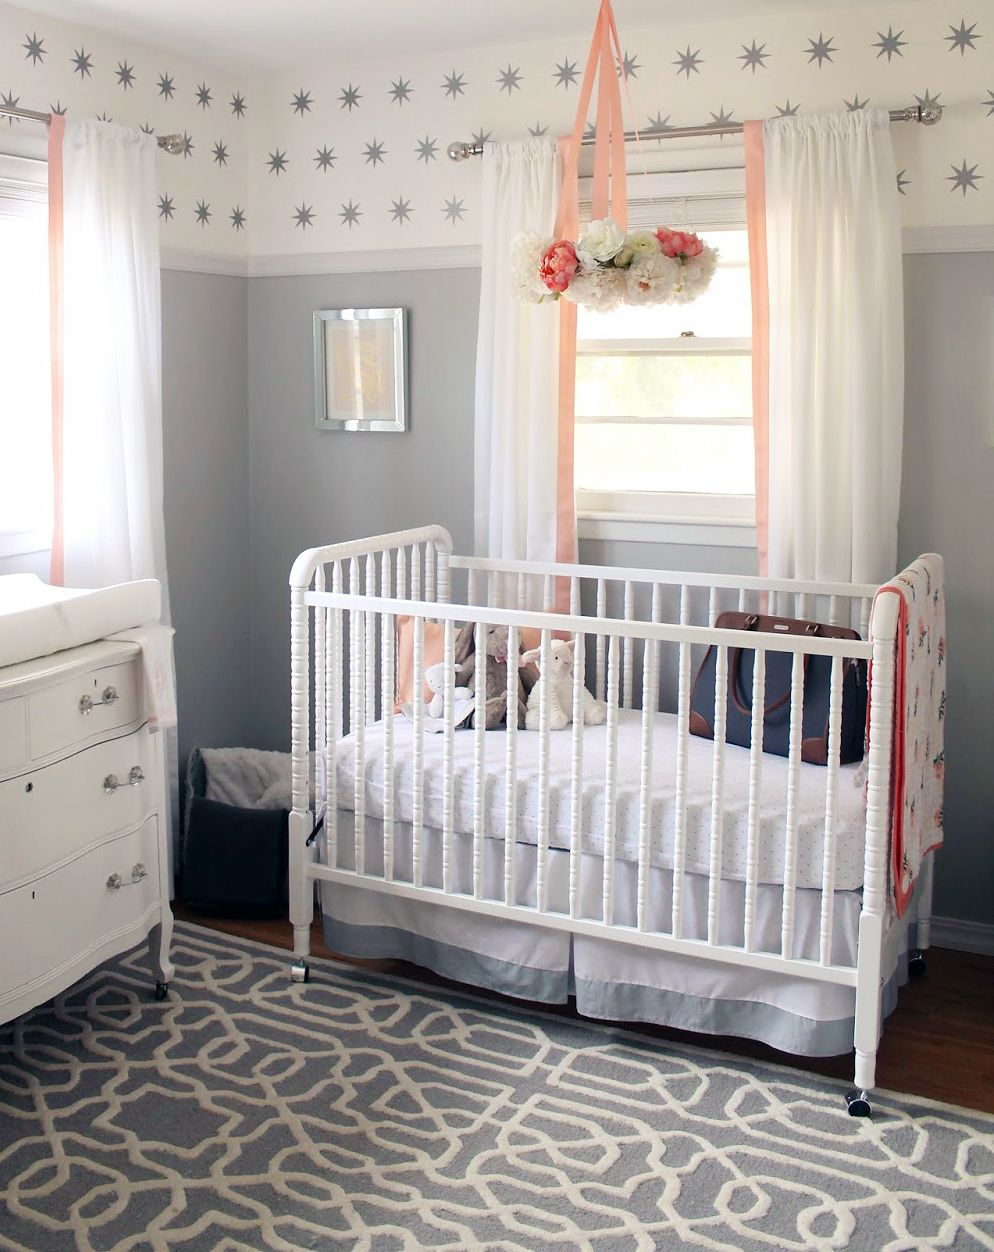 Best Peachy Pink White And Grey Baby Nursery Decorating Ideas For A Beautiful Girl Baby Girl 400 x 300